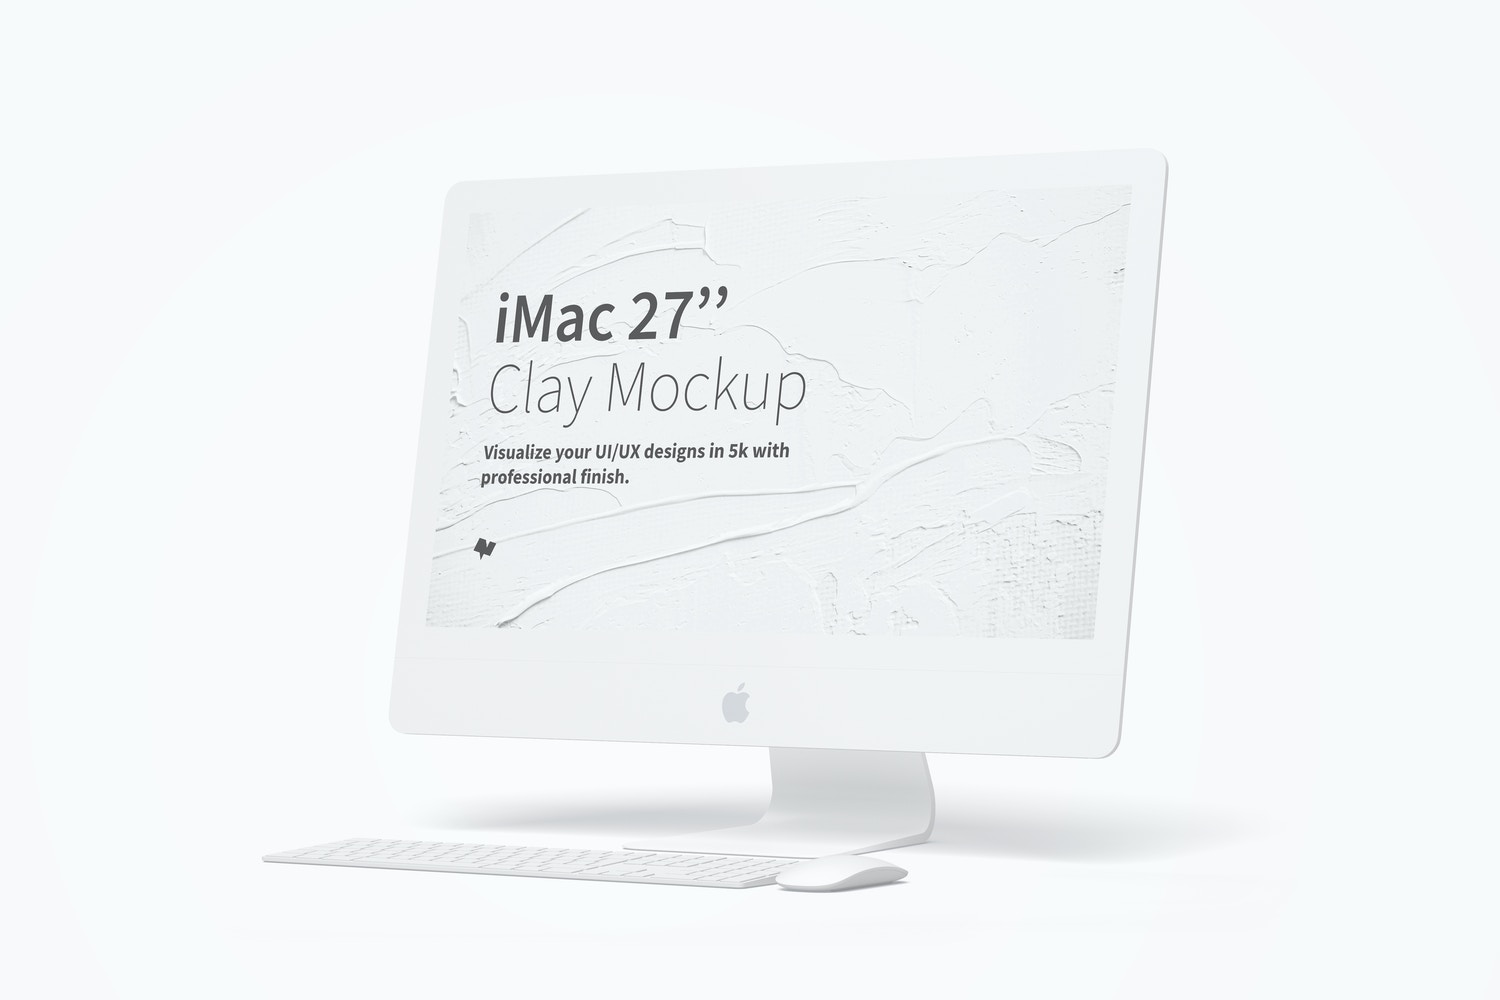 "Clay iMac 27"" Mockup, Right View by Original Mockups on Original Mockups"